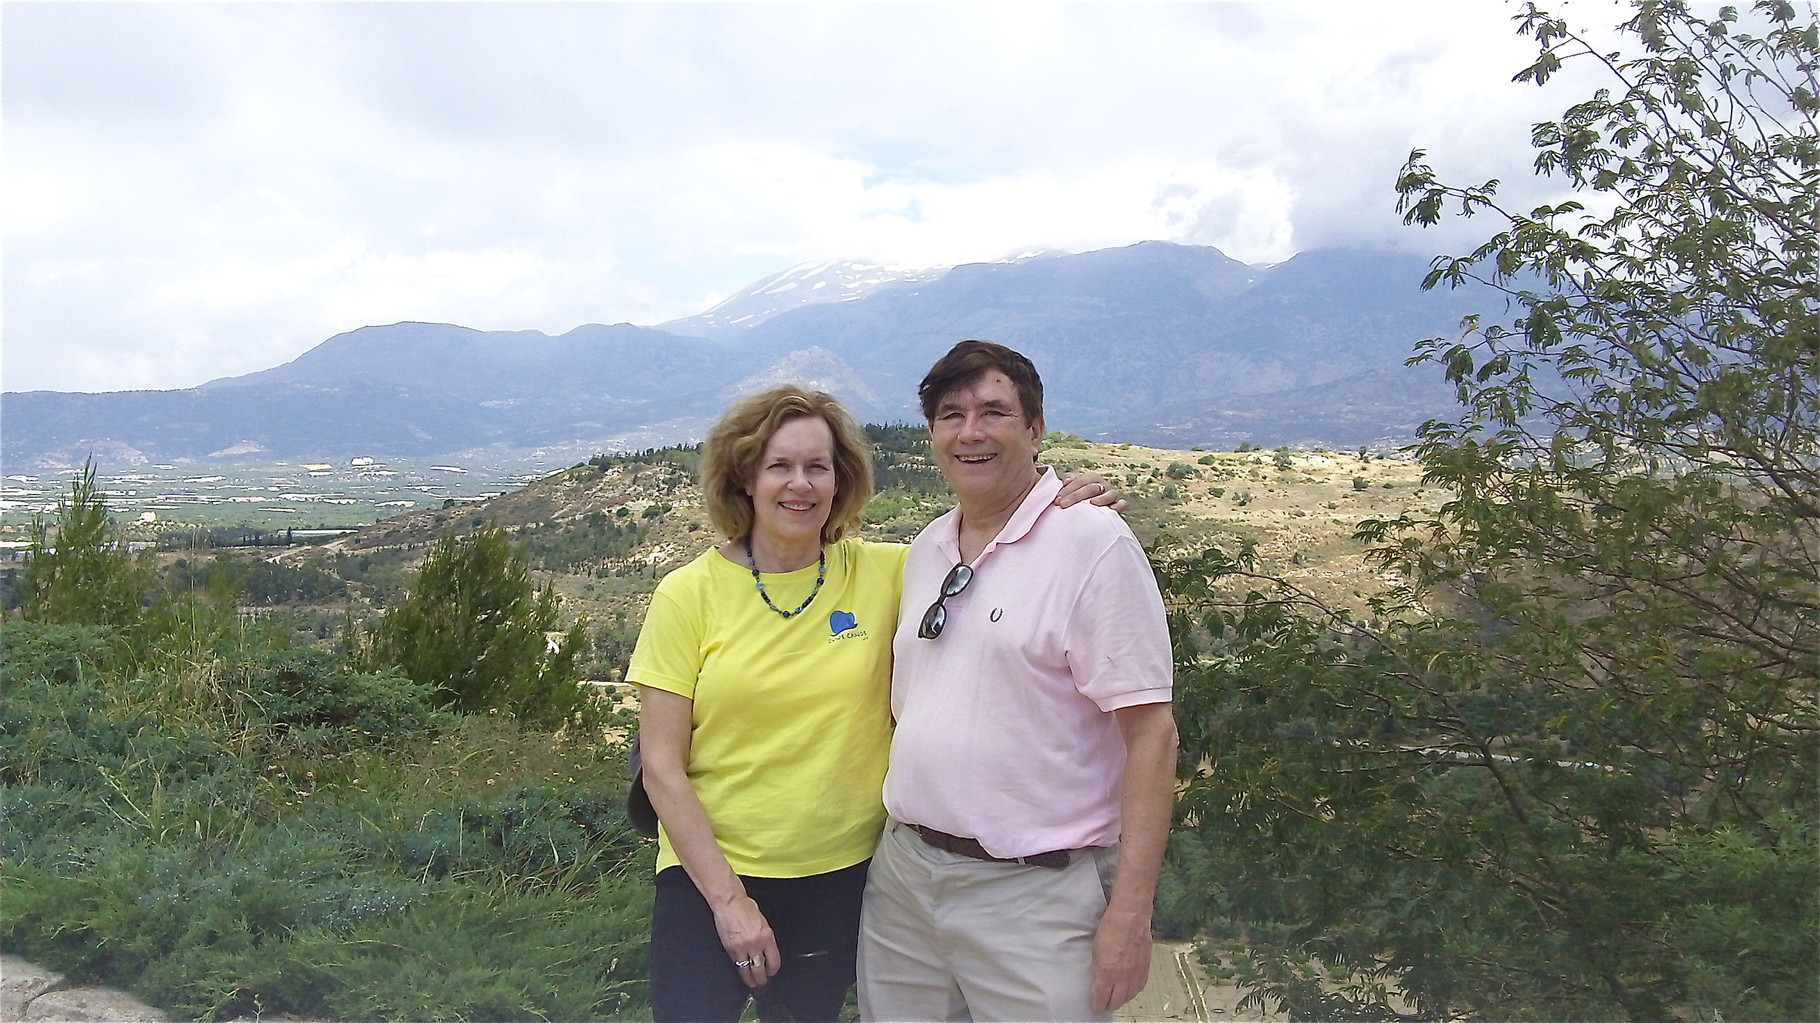 Lorraine and John at Phaestos, Crete